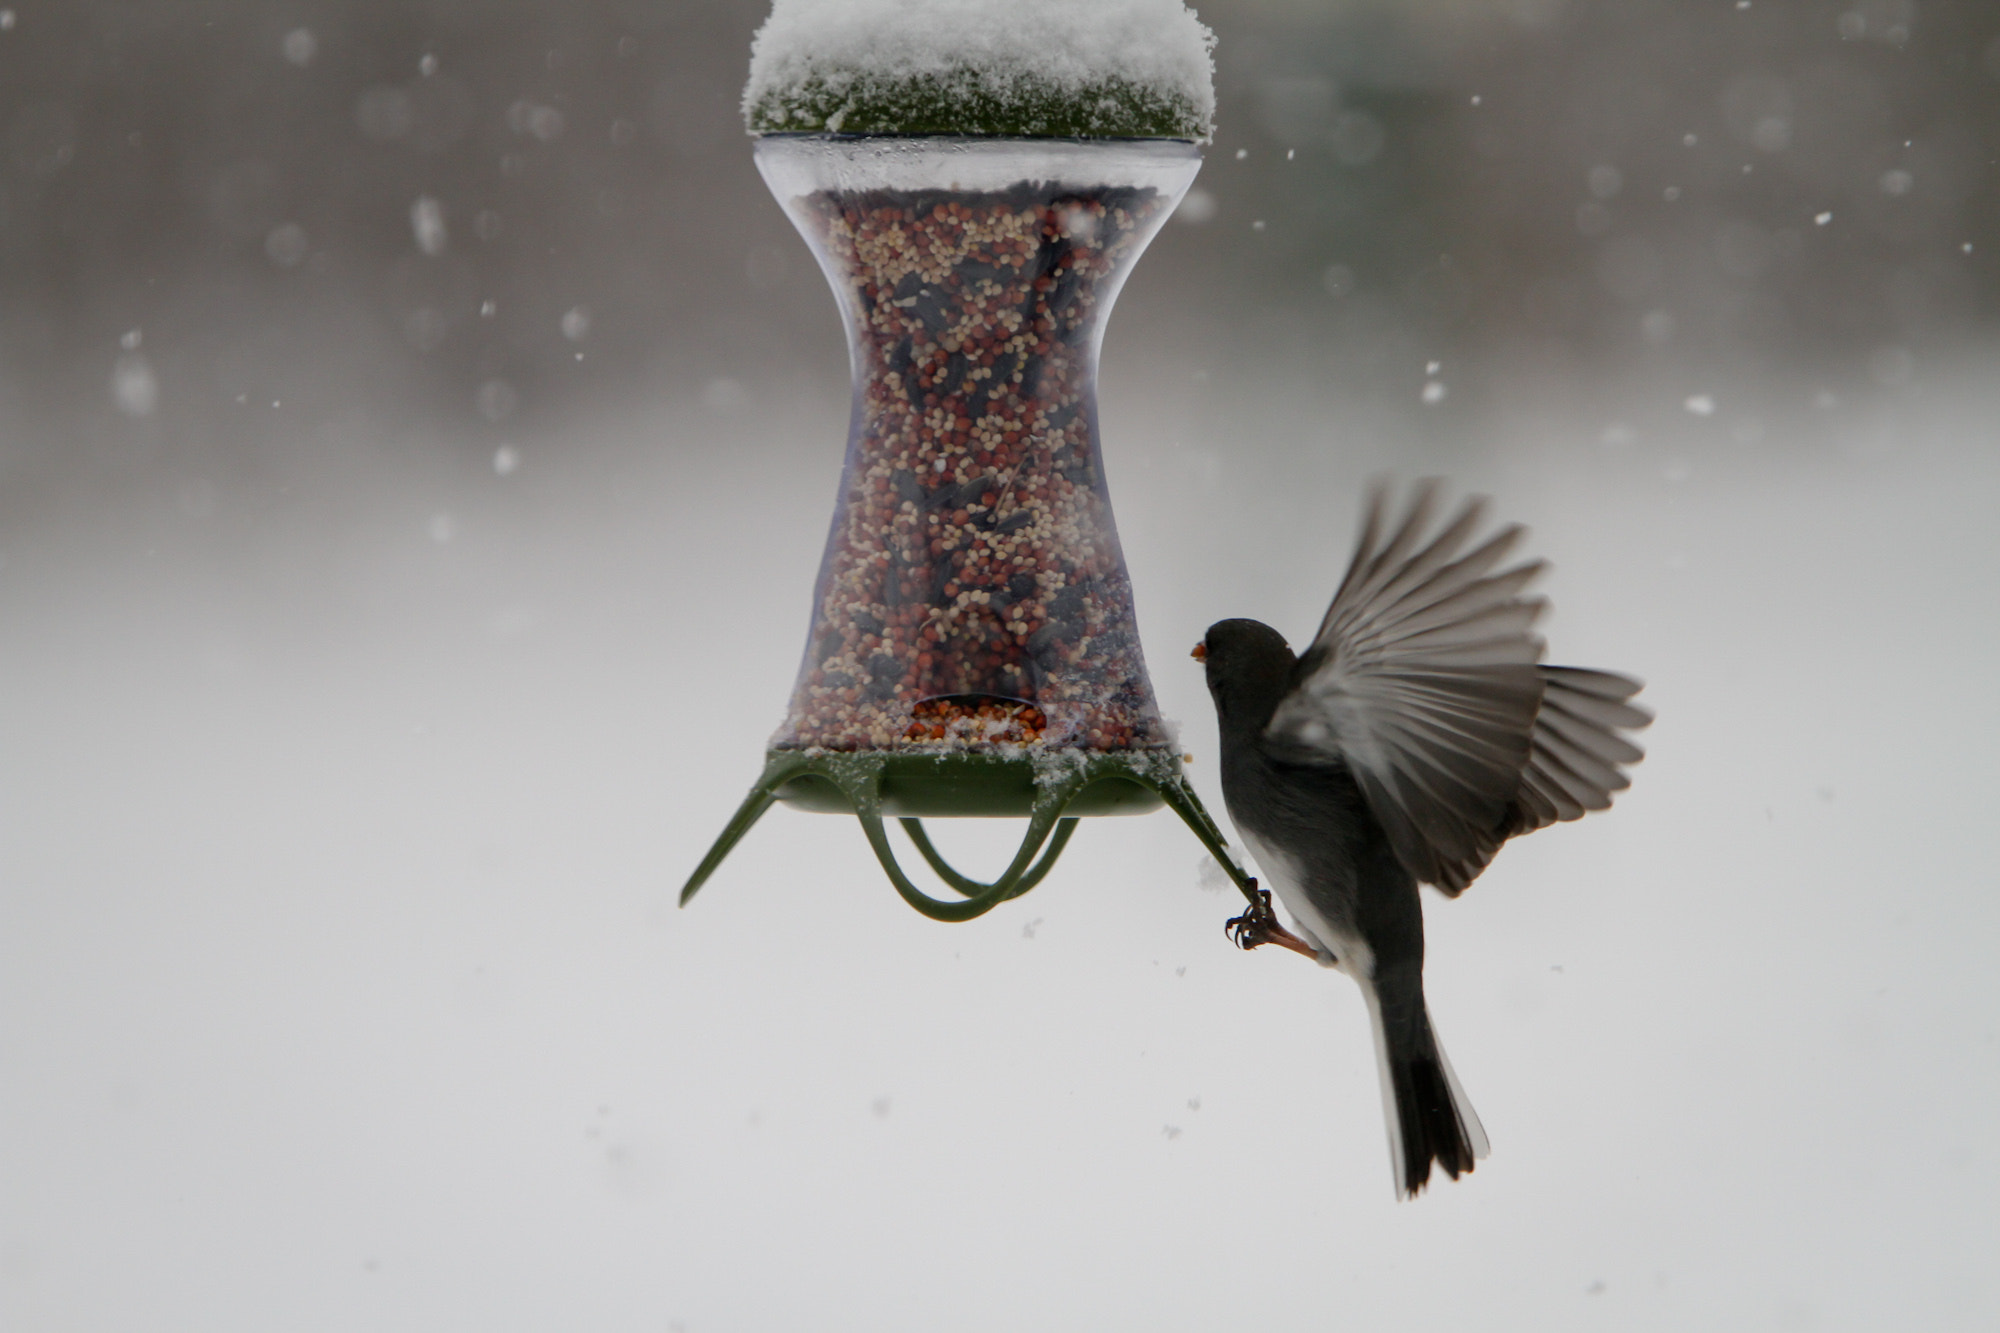 Photograph Snack In the Snow by Dave Dabour on 500px